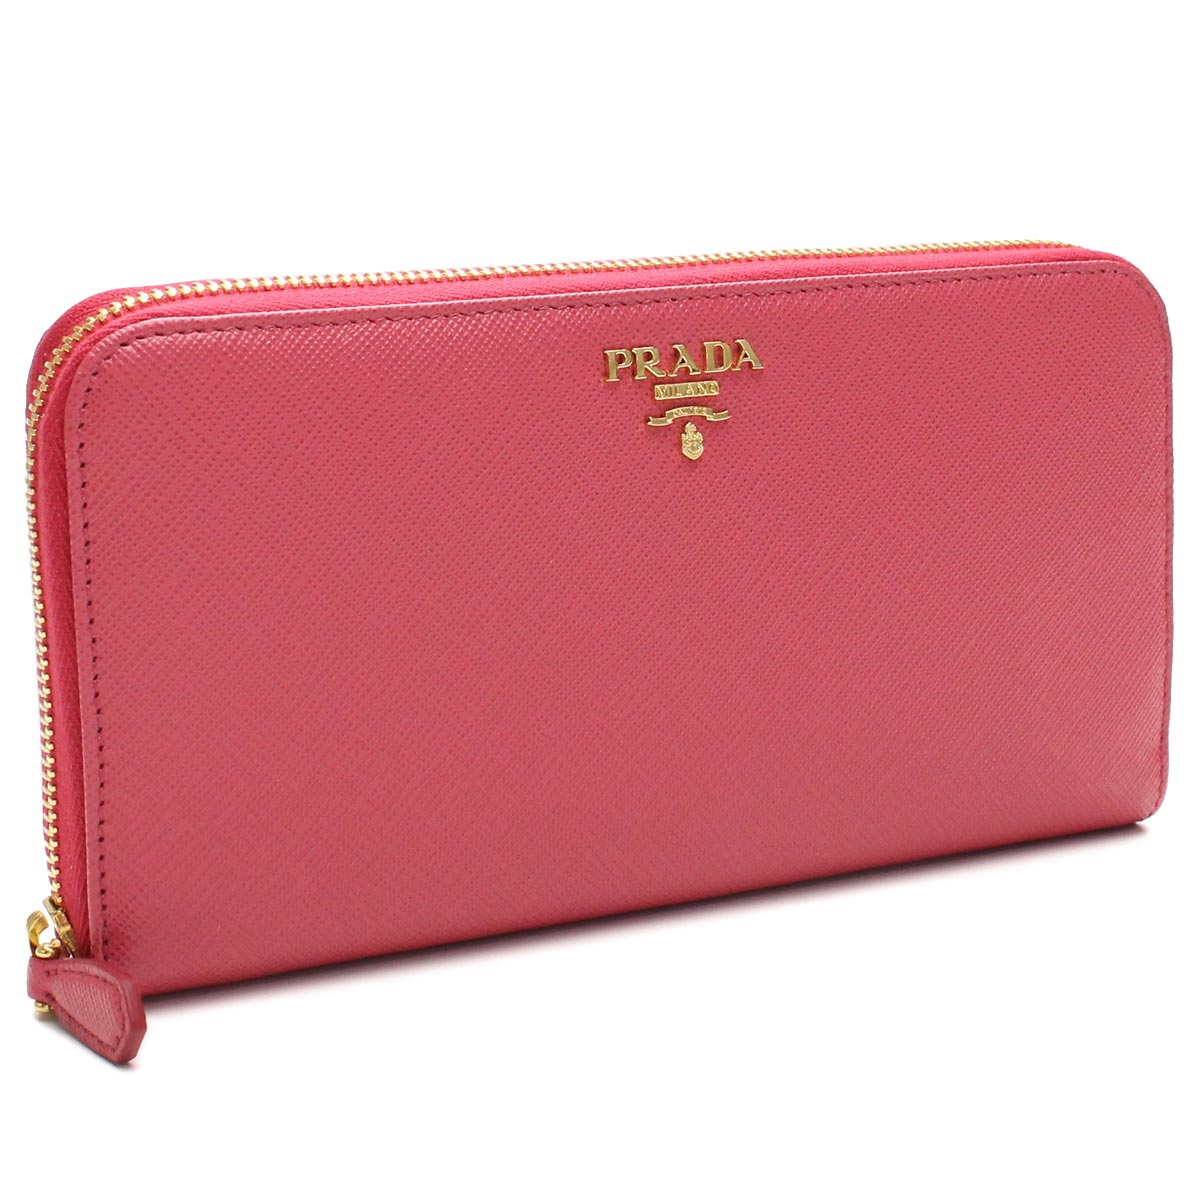 4258cf60e665cc Bighit The total brand wholesale: Prada (PRADA) wallet large zip around  1ML506 QWA F 0505 PEONIA pink( taxfree/send by EMS/authentic/A brand new  item ) ...